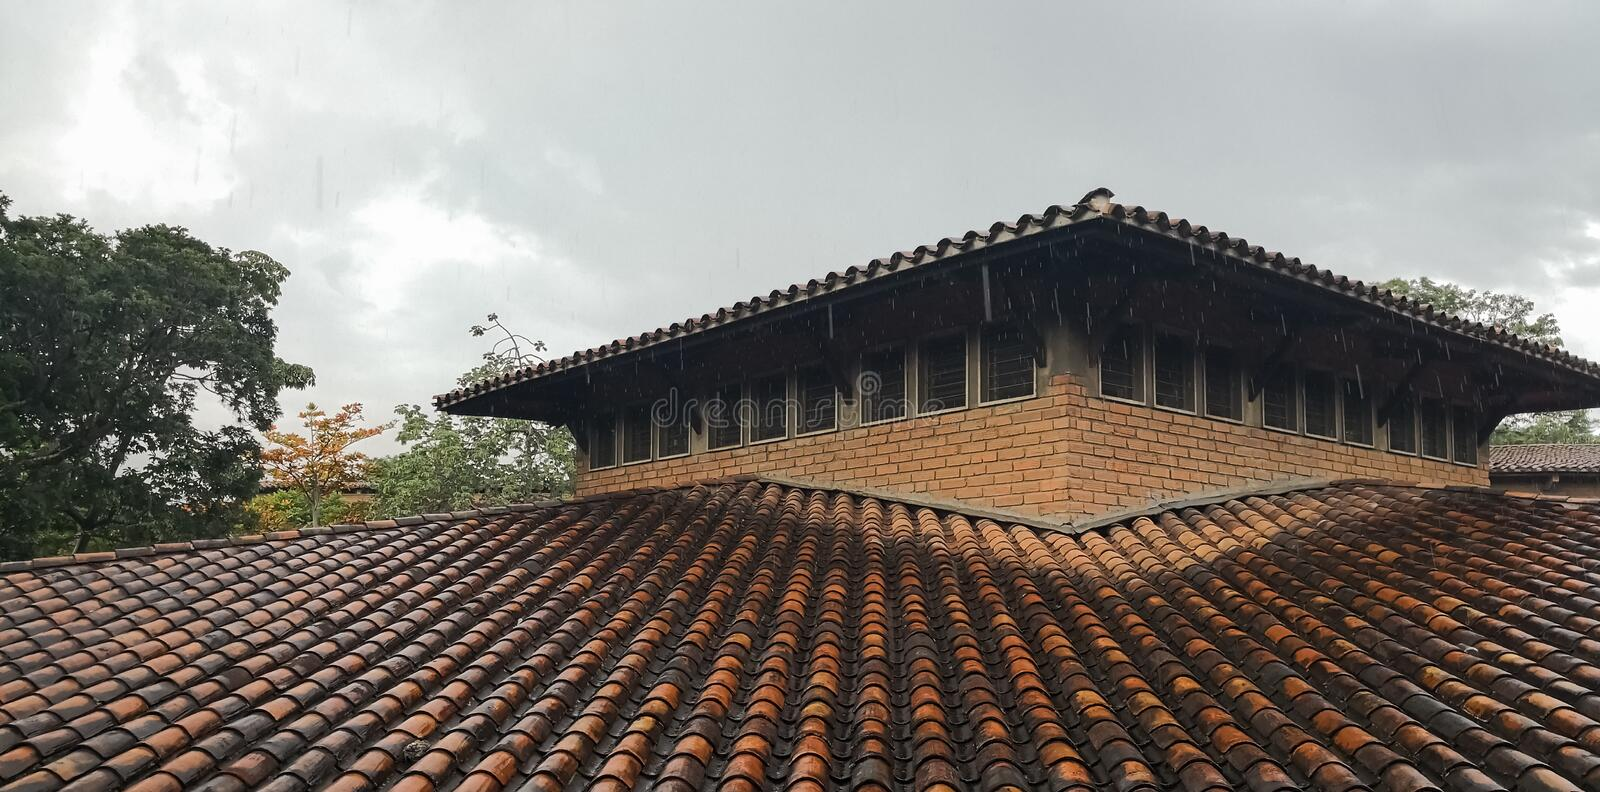 Roof with clay tiles wet from the rain. Rainy and cloudy day and detail of the brown clay tiles with contrast between those wet by the storm and those dry. Heavy royalty free stock images